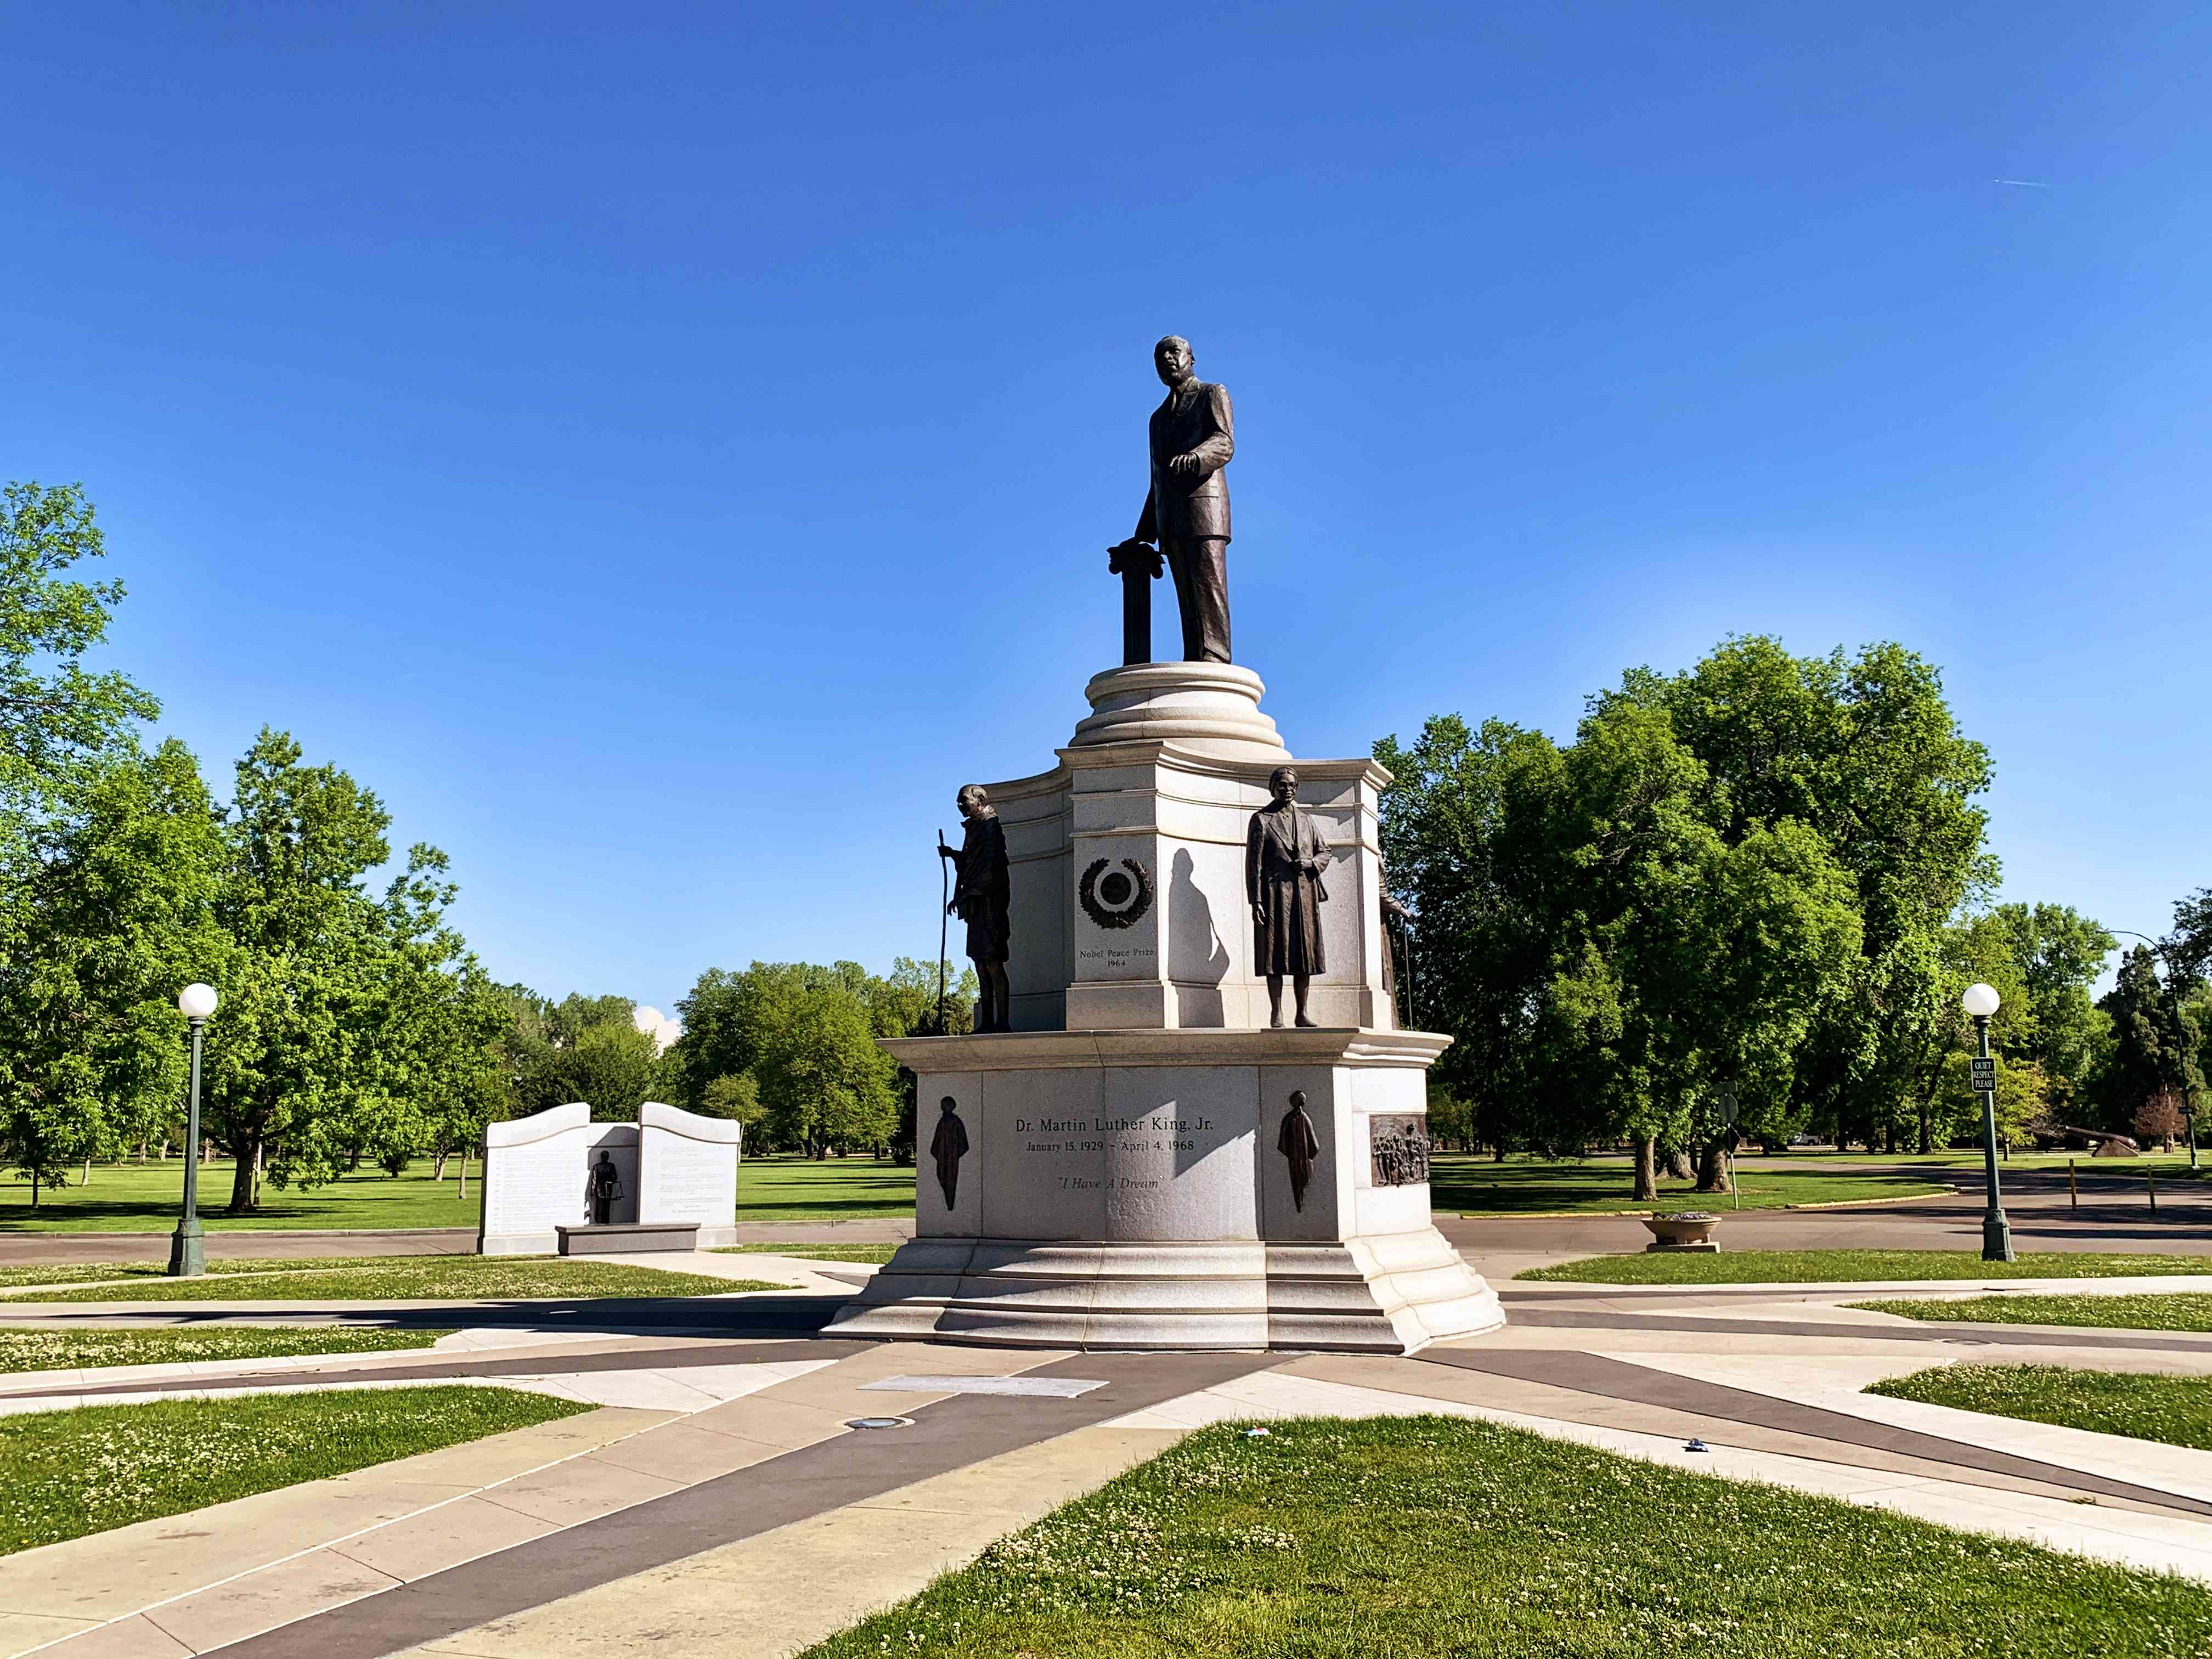 Statue in City Park